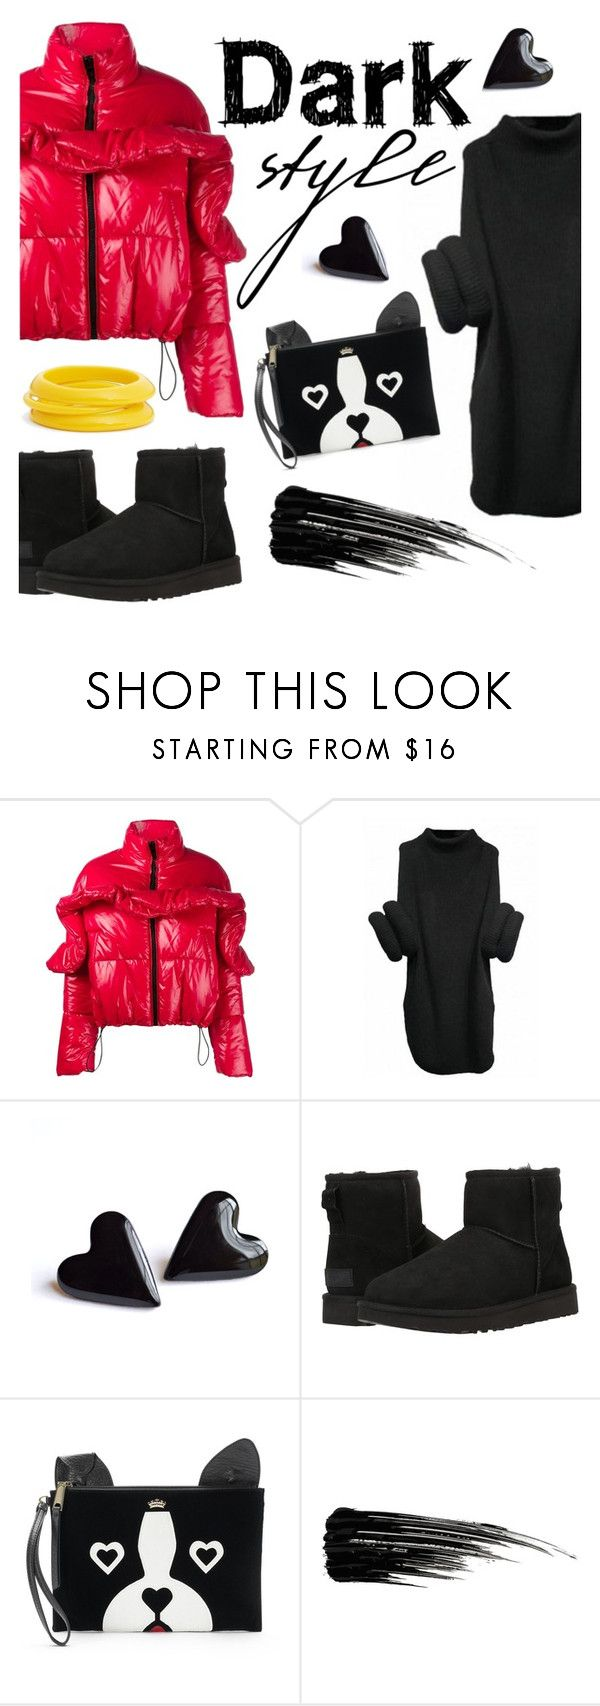 """dark style"" by janesmiley ❤ liked on Polyvore featuring MSGM, UGG Australia, Juicy Couture, Urban Decay and ZENZii"